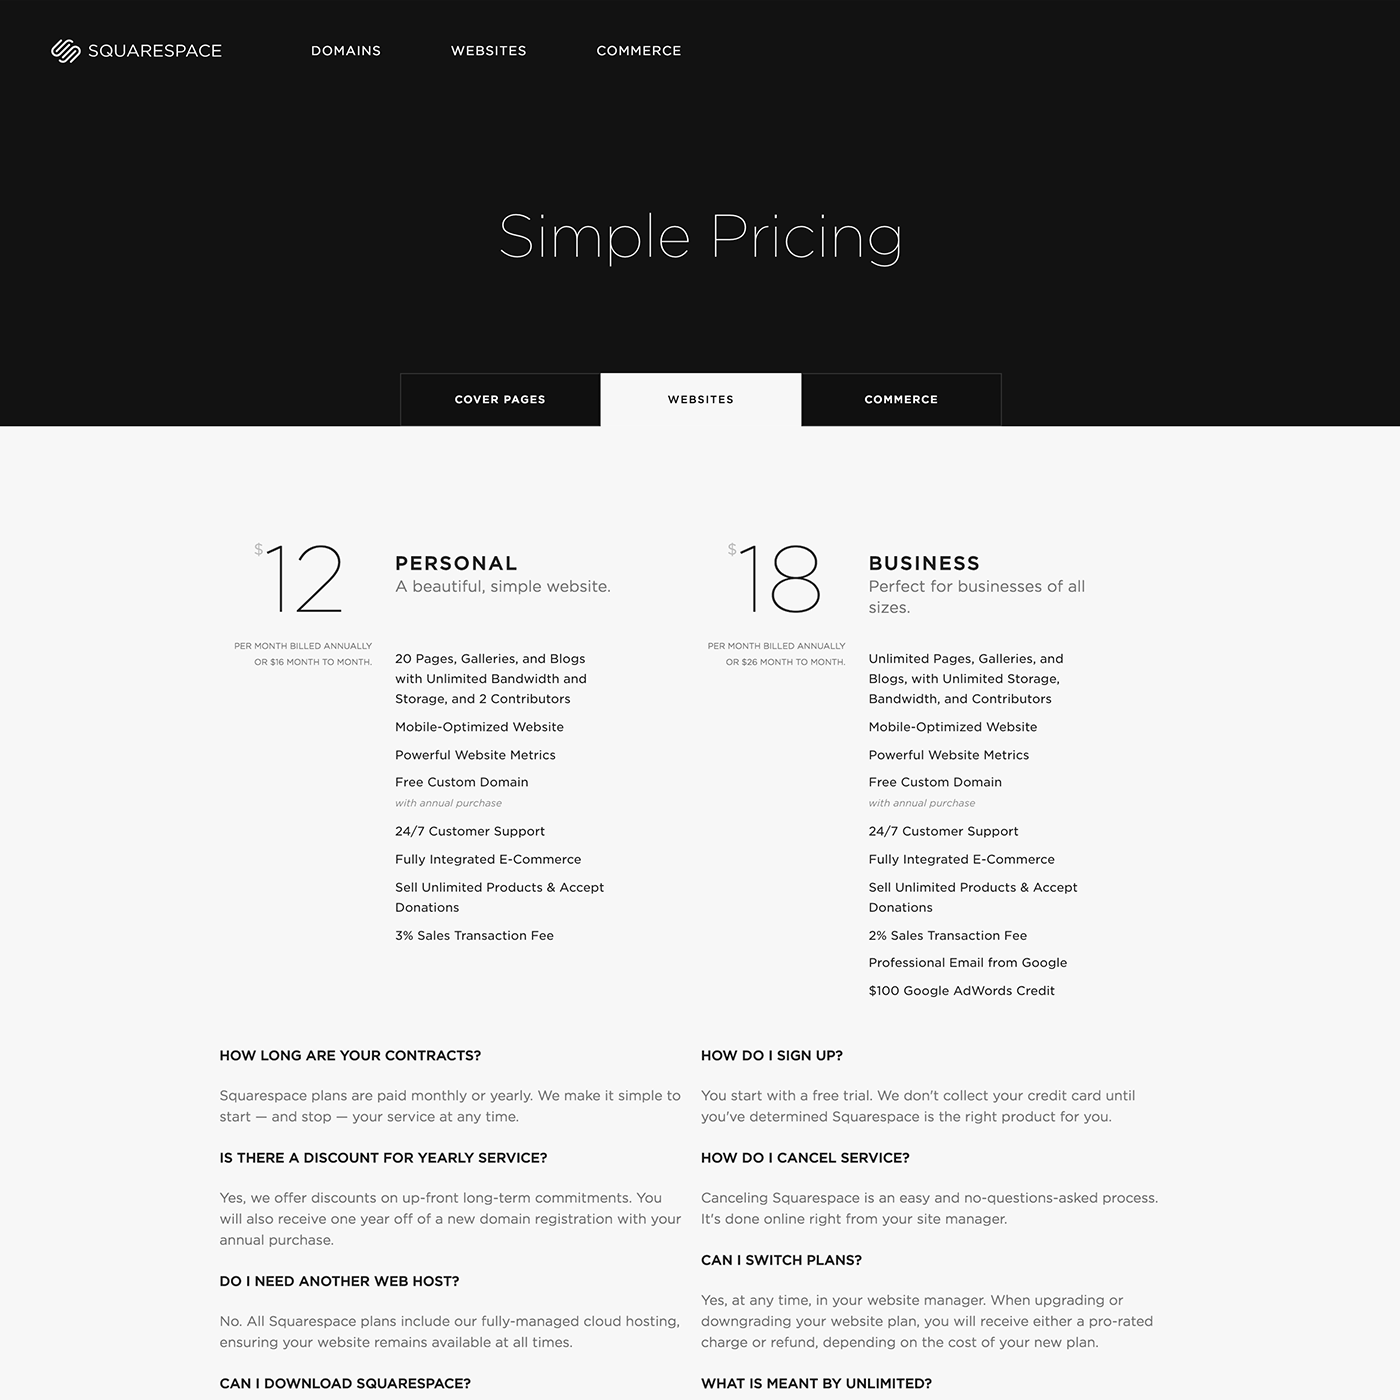 60+ Most Stunning Pricing Pages You've Ever Seen - Prototypr